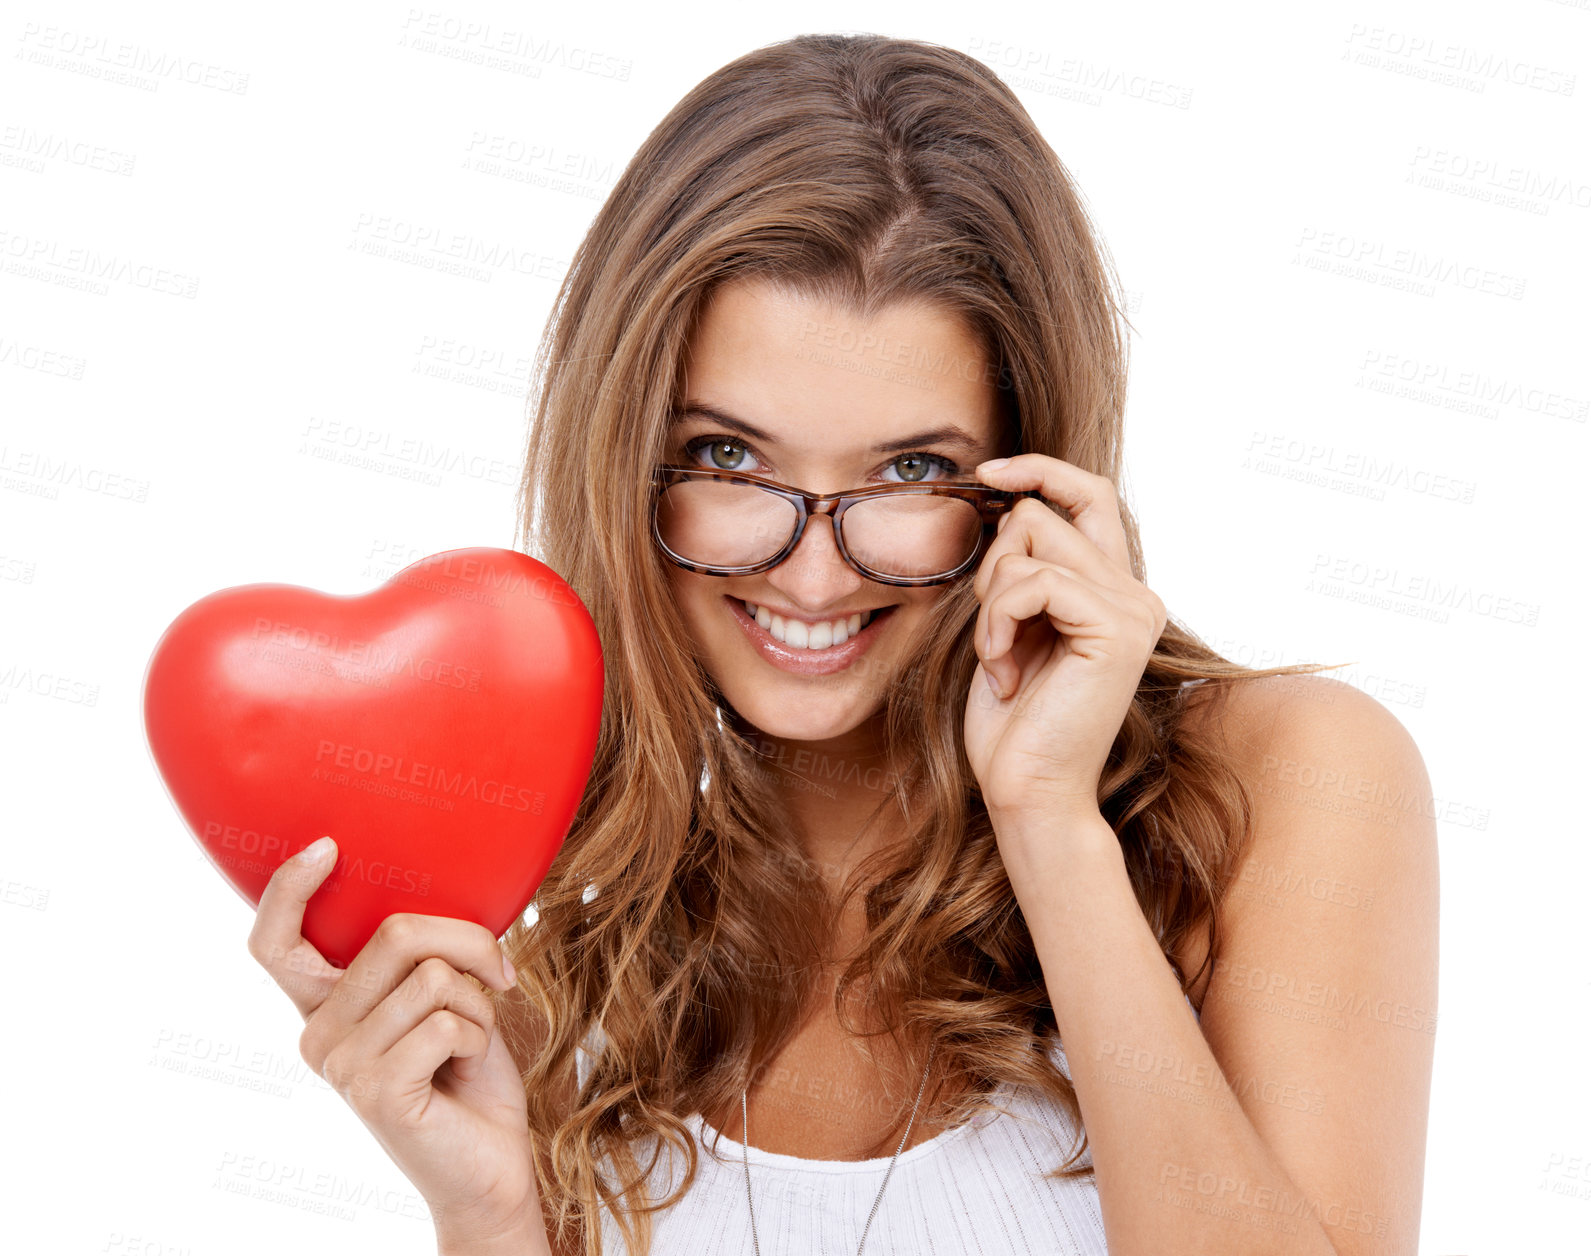 Buy stock photo Portrait of an attractive young woman holding a heart-shaped prop